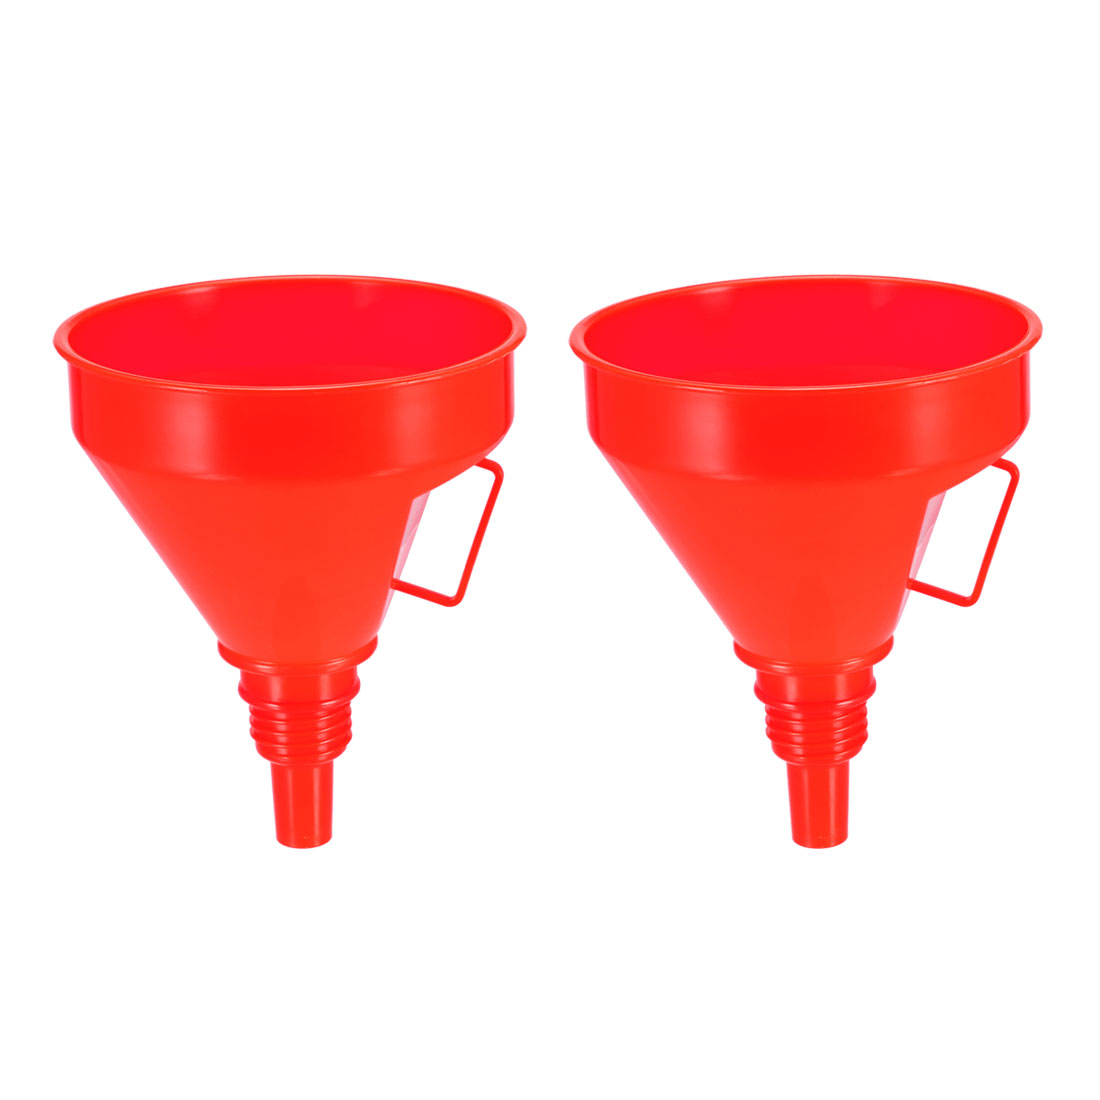 """Filter Funnel 5.3"""" Plastic Feul Funnel Red for Petrol Engine Oil Water Fuel 2pcs"""